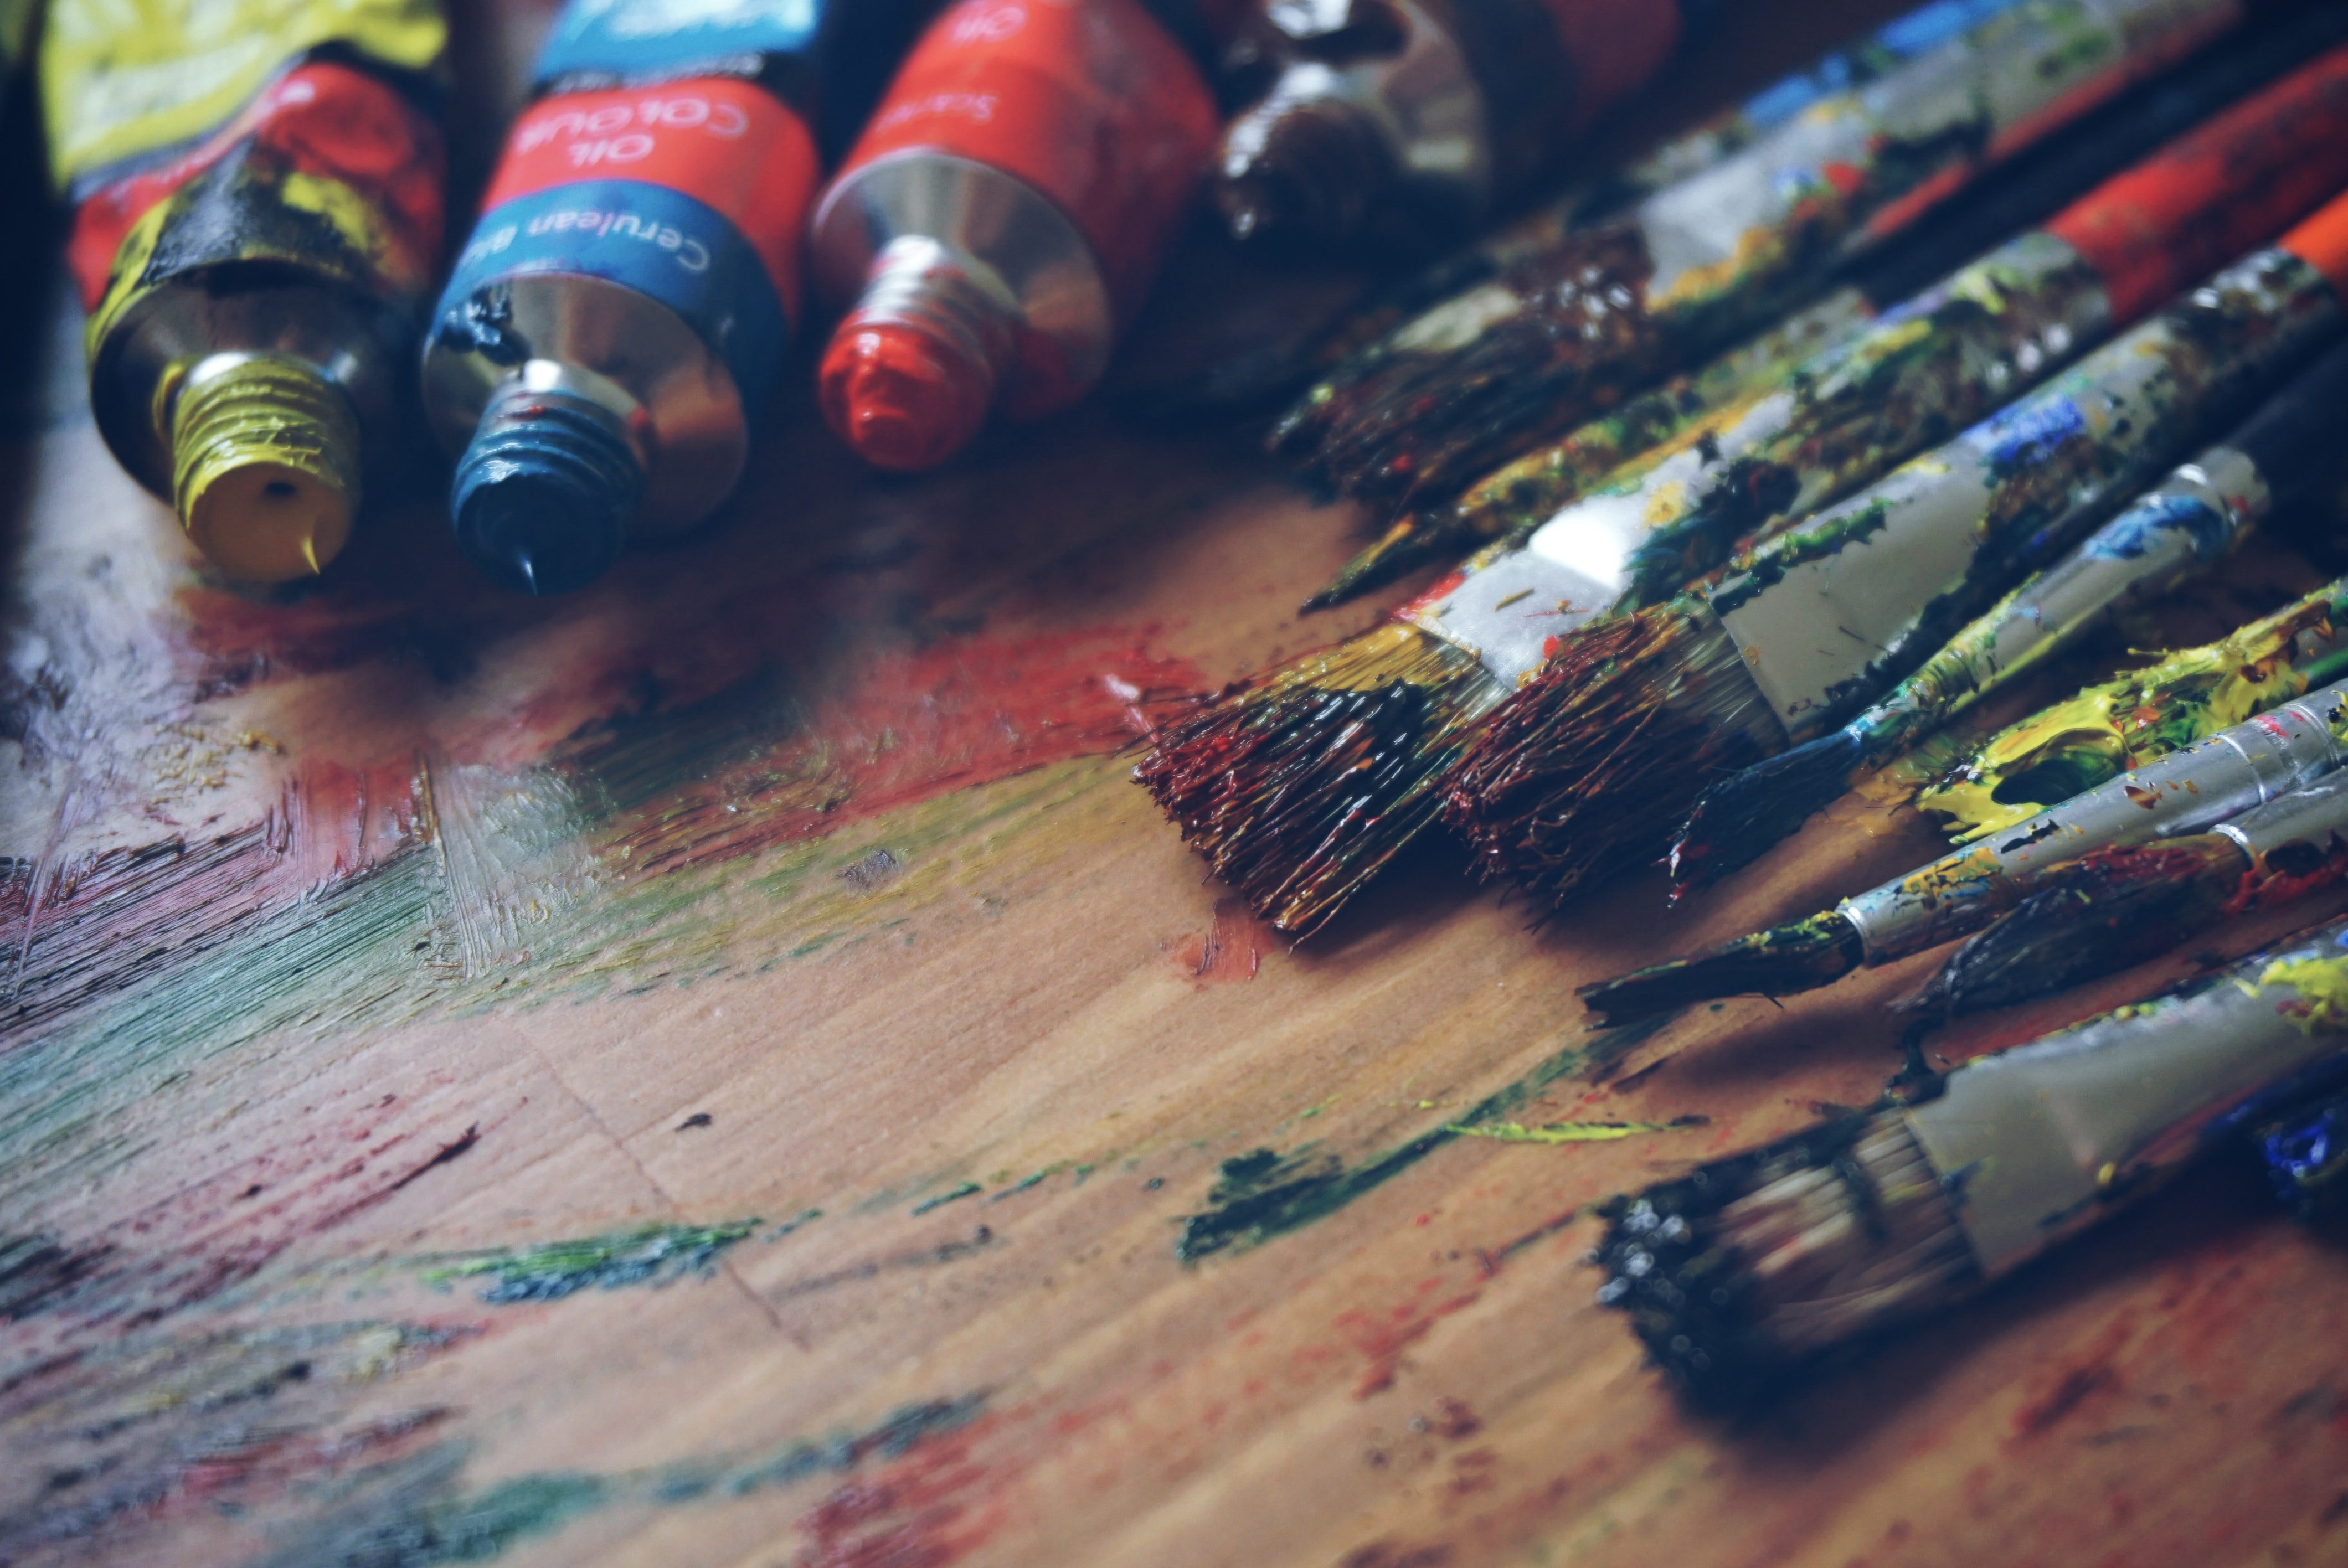 Close up of paint tubes, brushes and bristles with smeared painted on table, Ljubljana